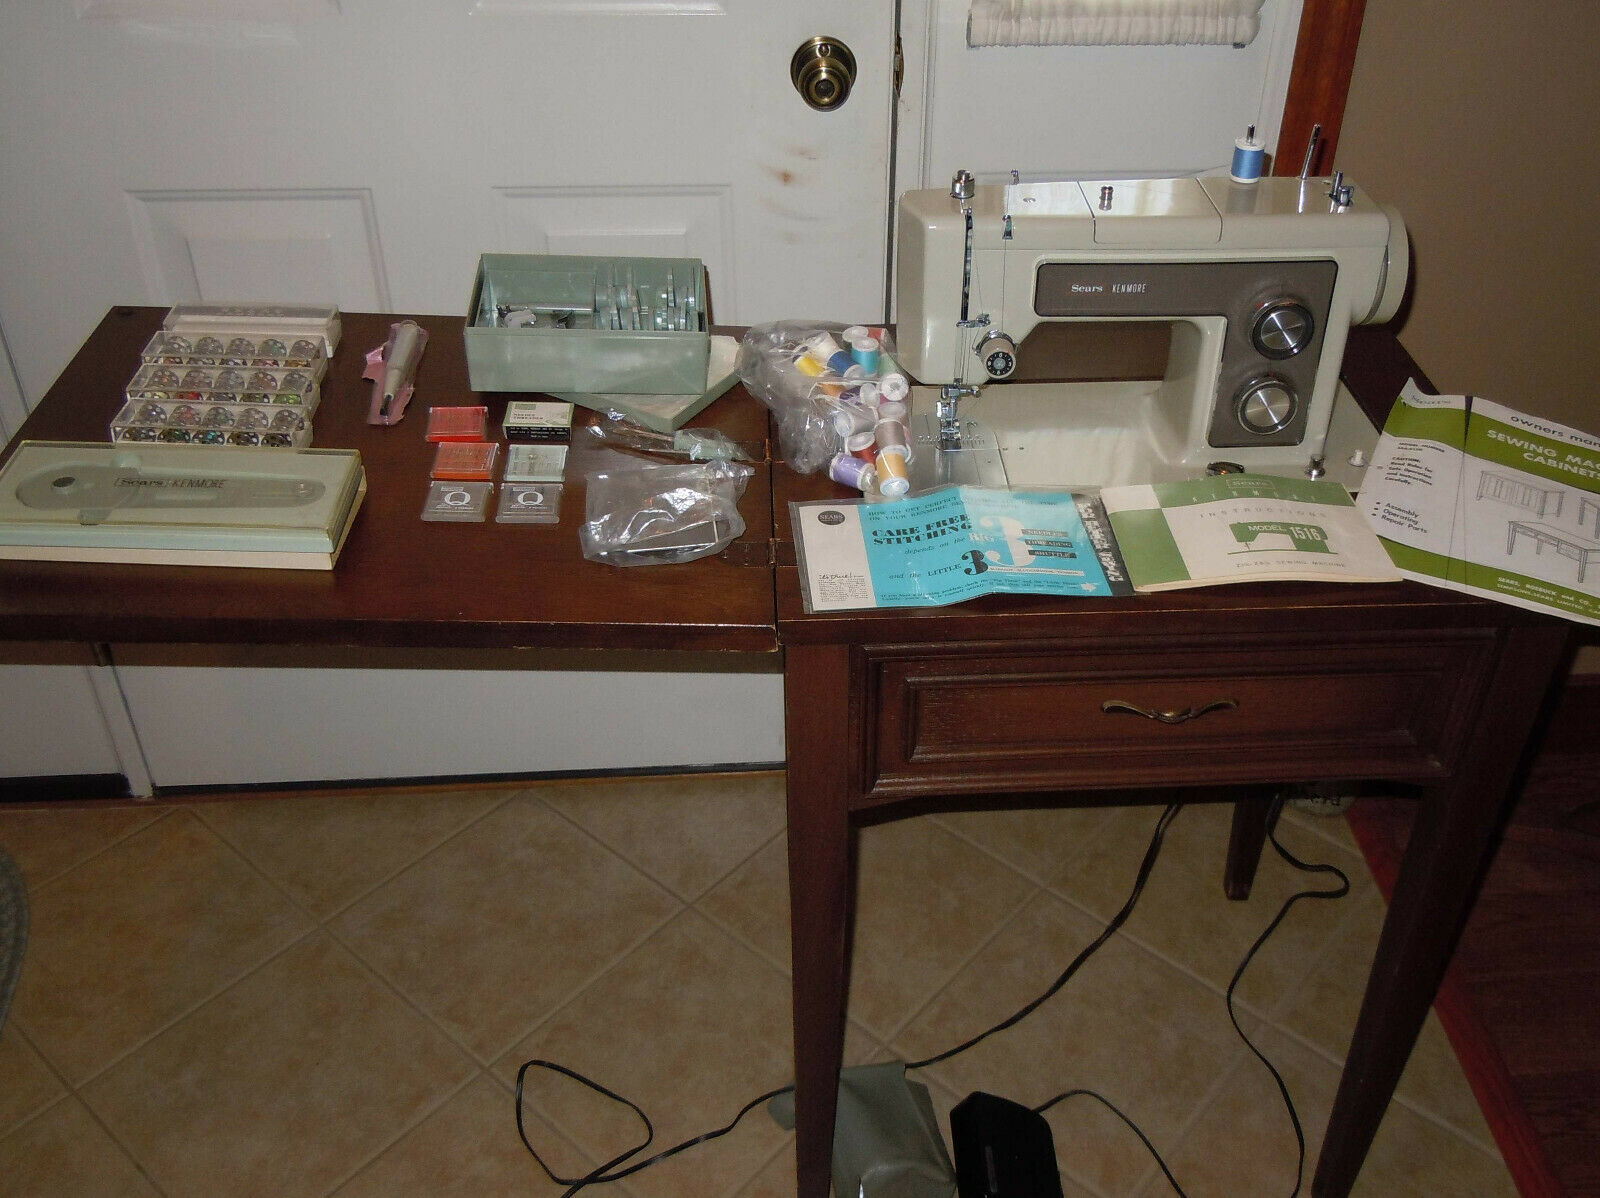 s l1600 - VINTAGE KENMORE SEWING MACHINE 5186 IN SEARS CABINET W/INSTRUC & LOTS OF ACCESS